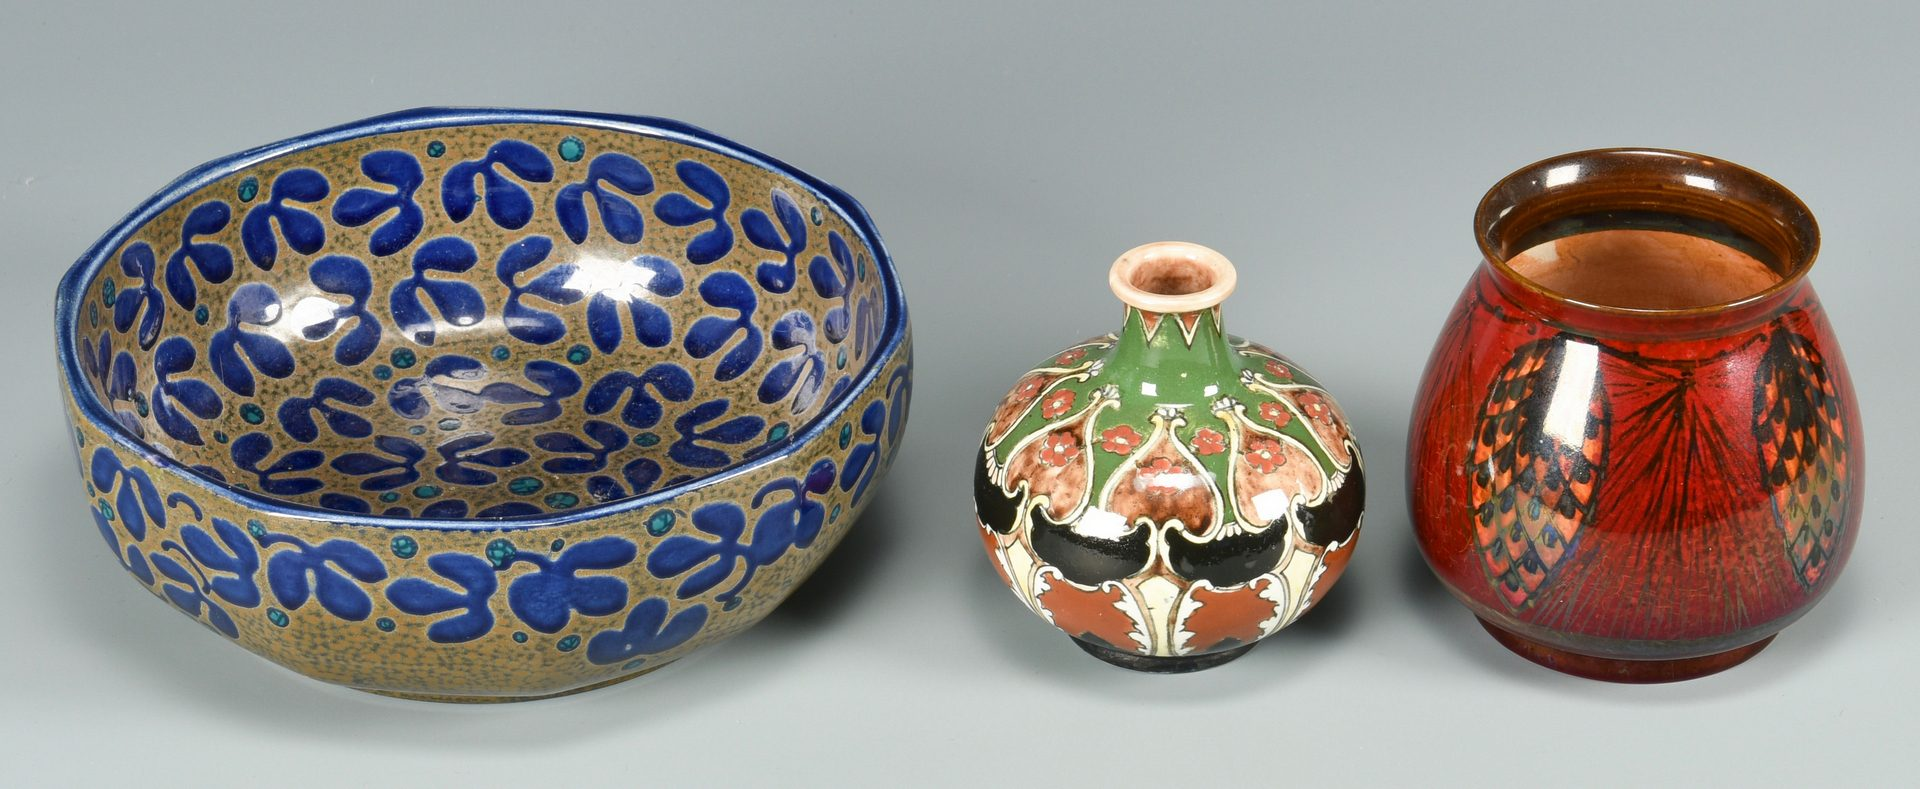 Lot 513: Group of 7 European Art Pottery Items